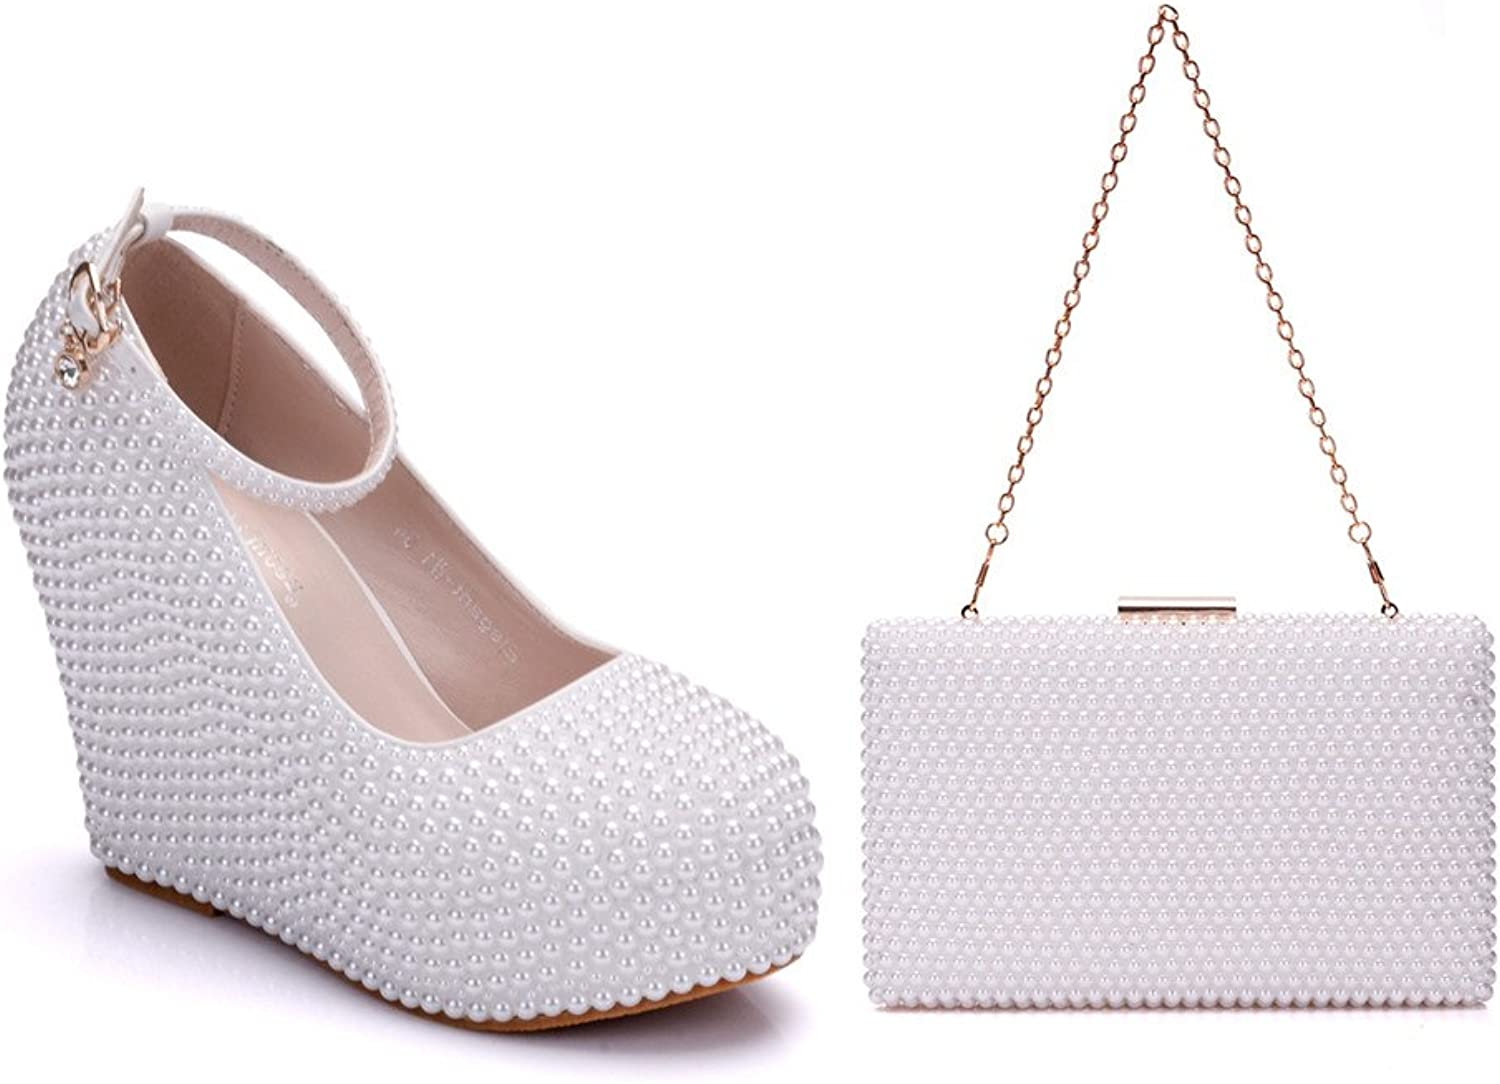 KaDanTing Full Imitation Pearls Decoration Women's Wedges shoes and Handbag Sets